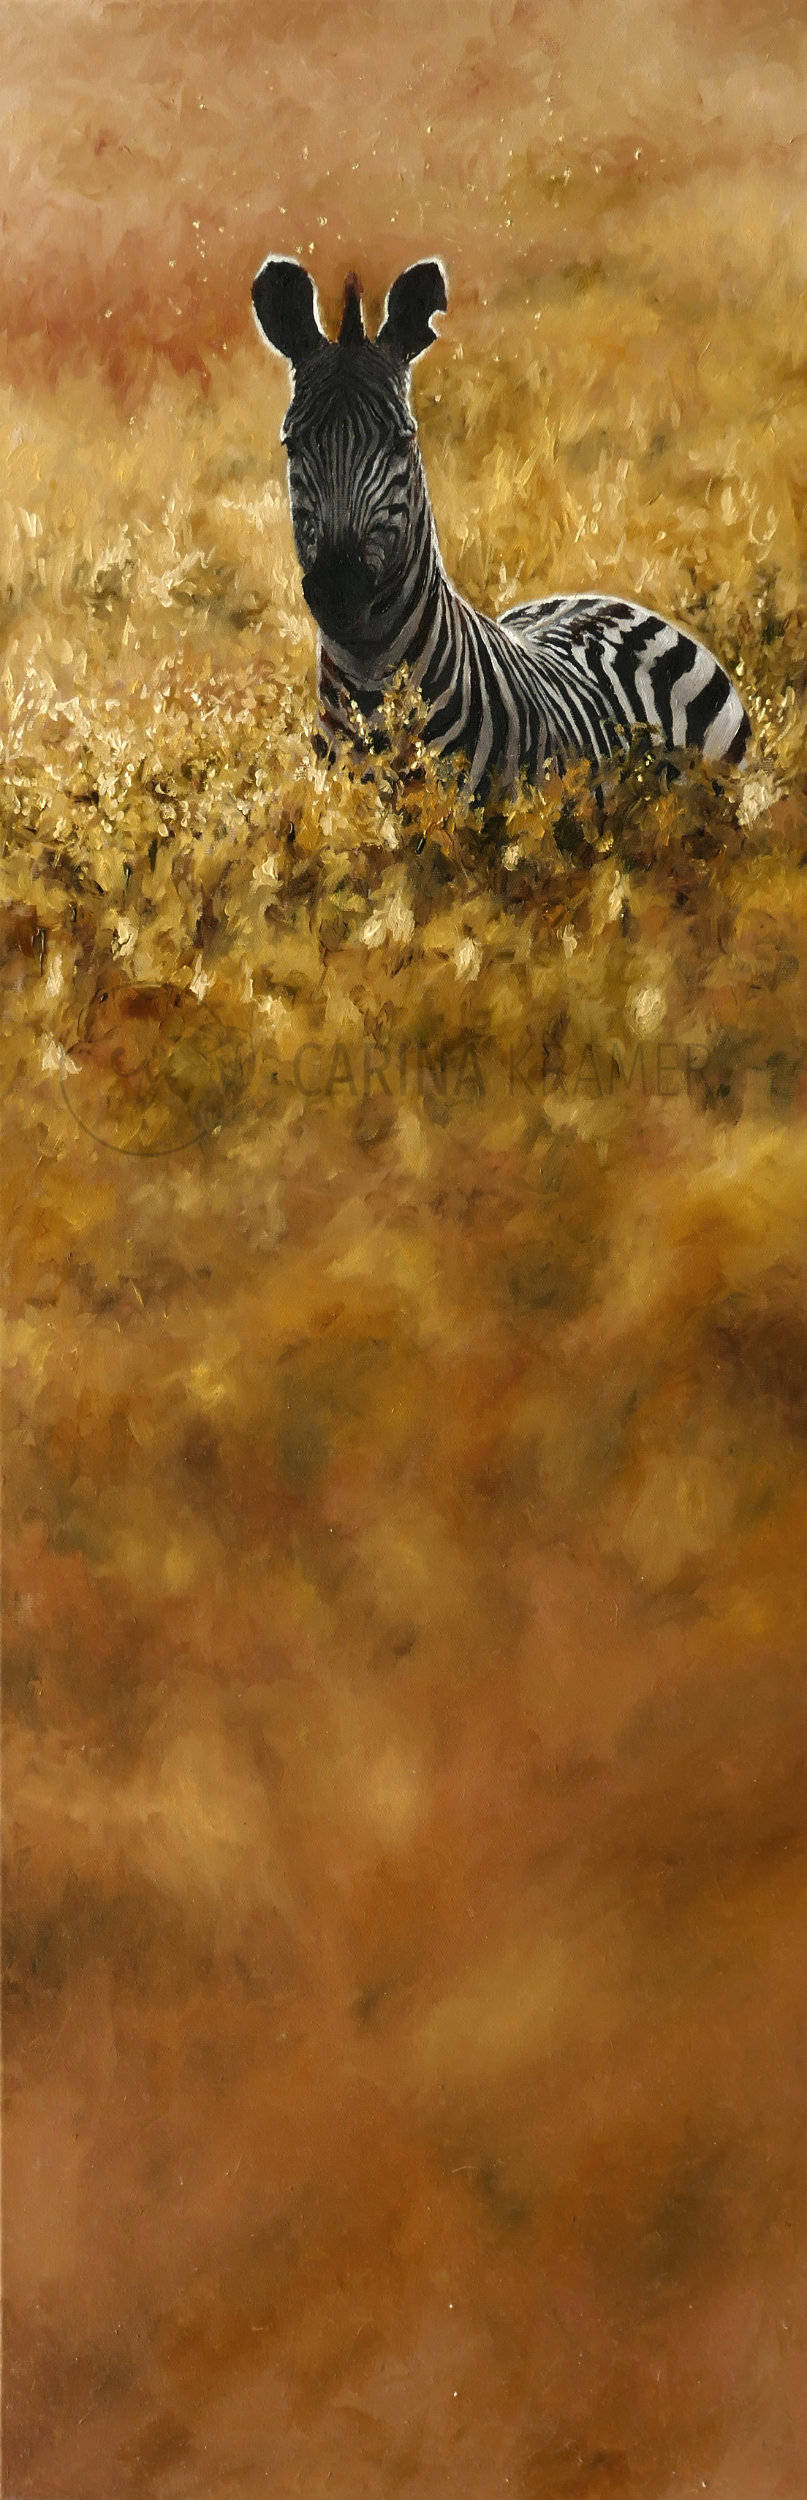 Fields of Gold - Carina Kramer - Fine Art, Original Painting, Wildlife Art/ Animal Painting